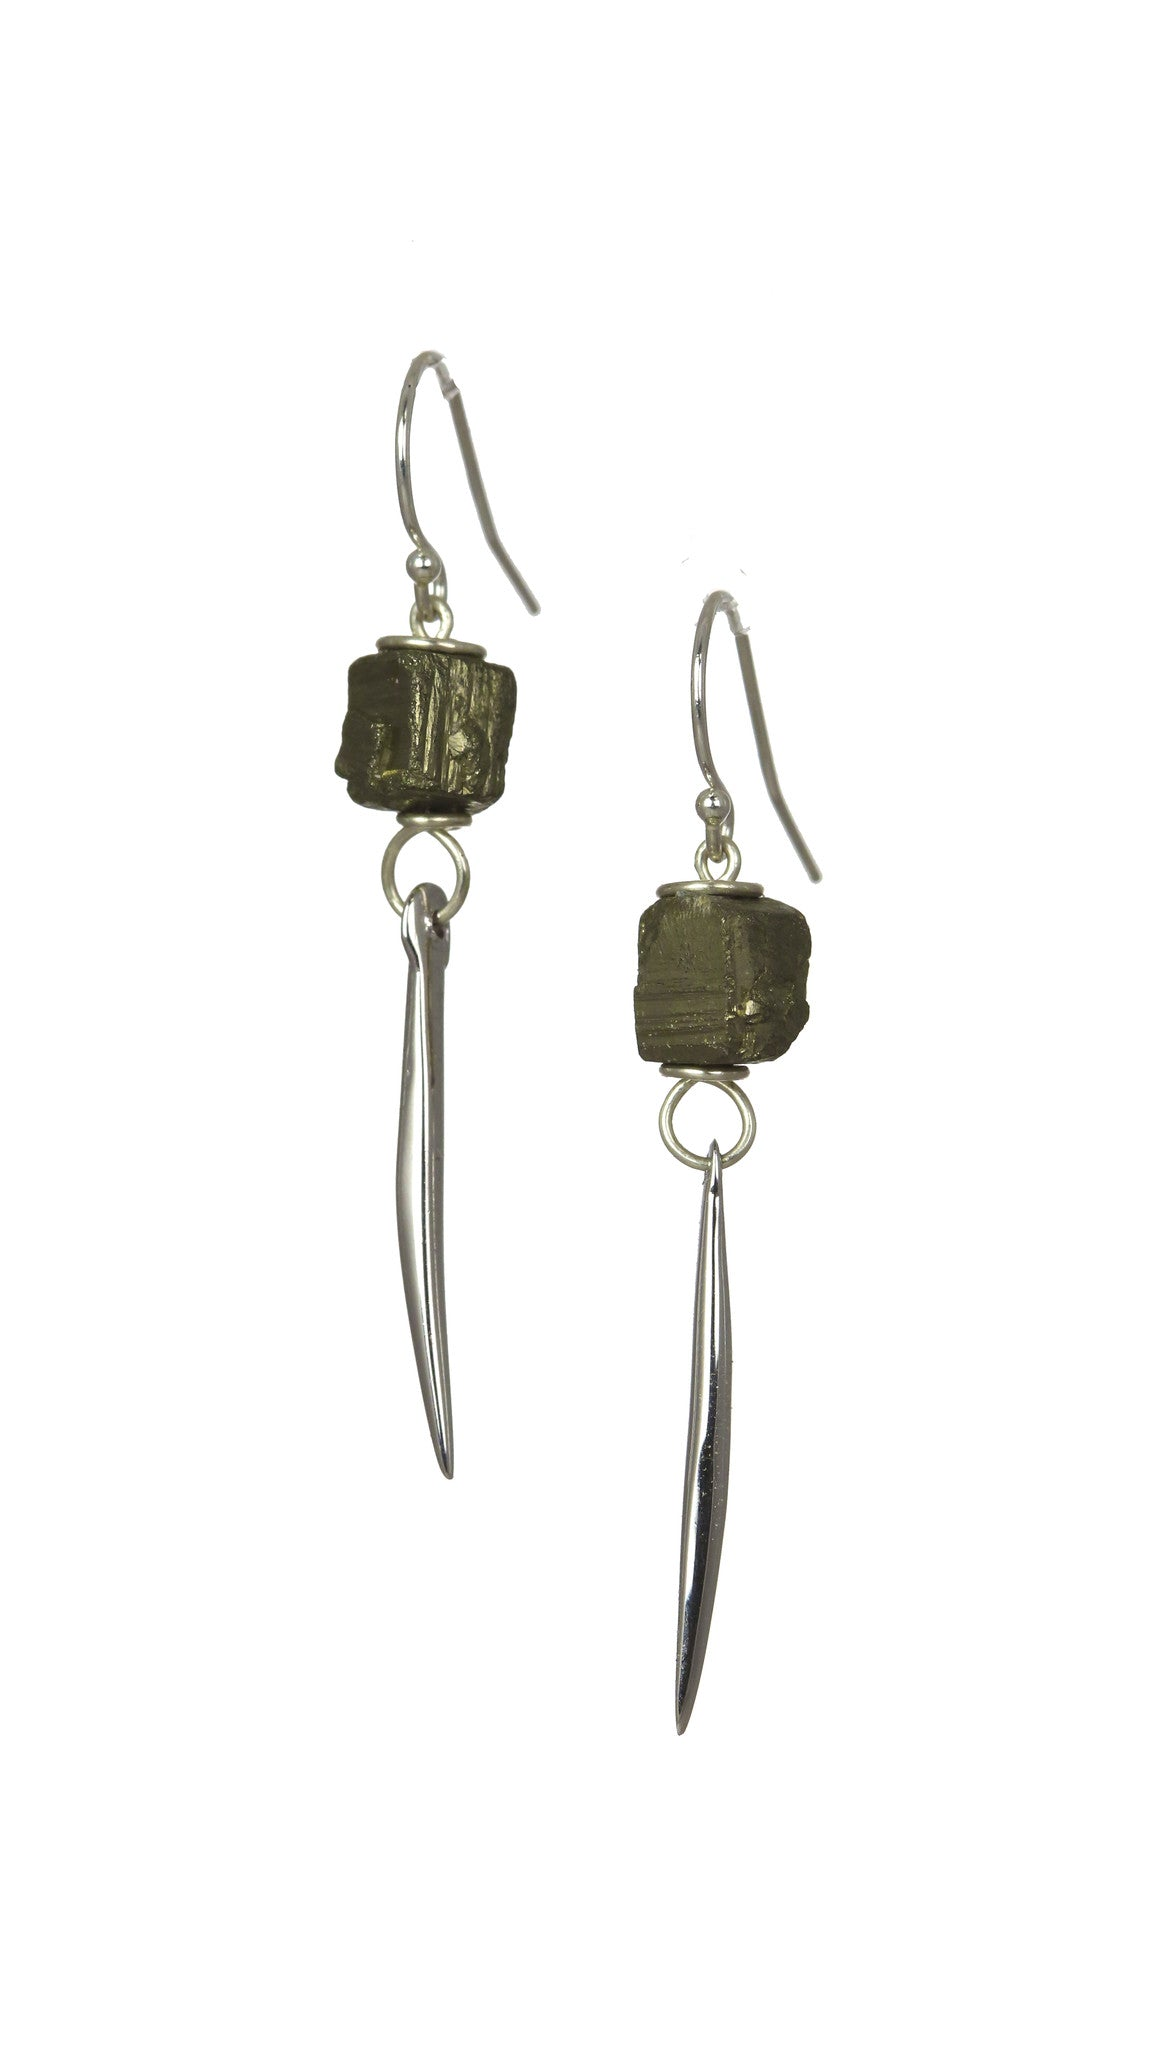 Pyrite Kinship Porcupine Quill Earrings in Sterling Silver (Small)